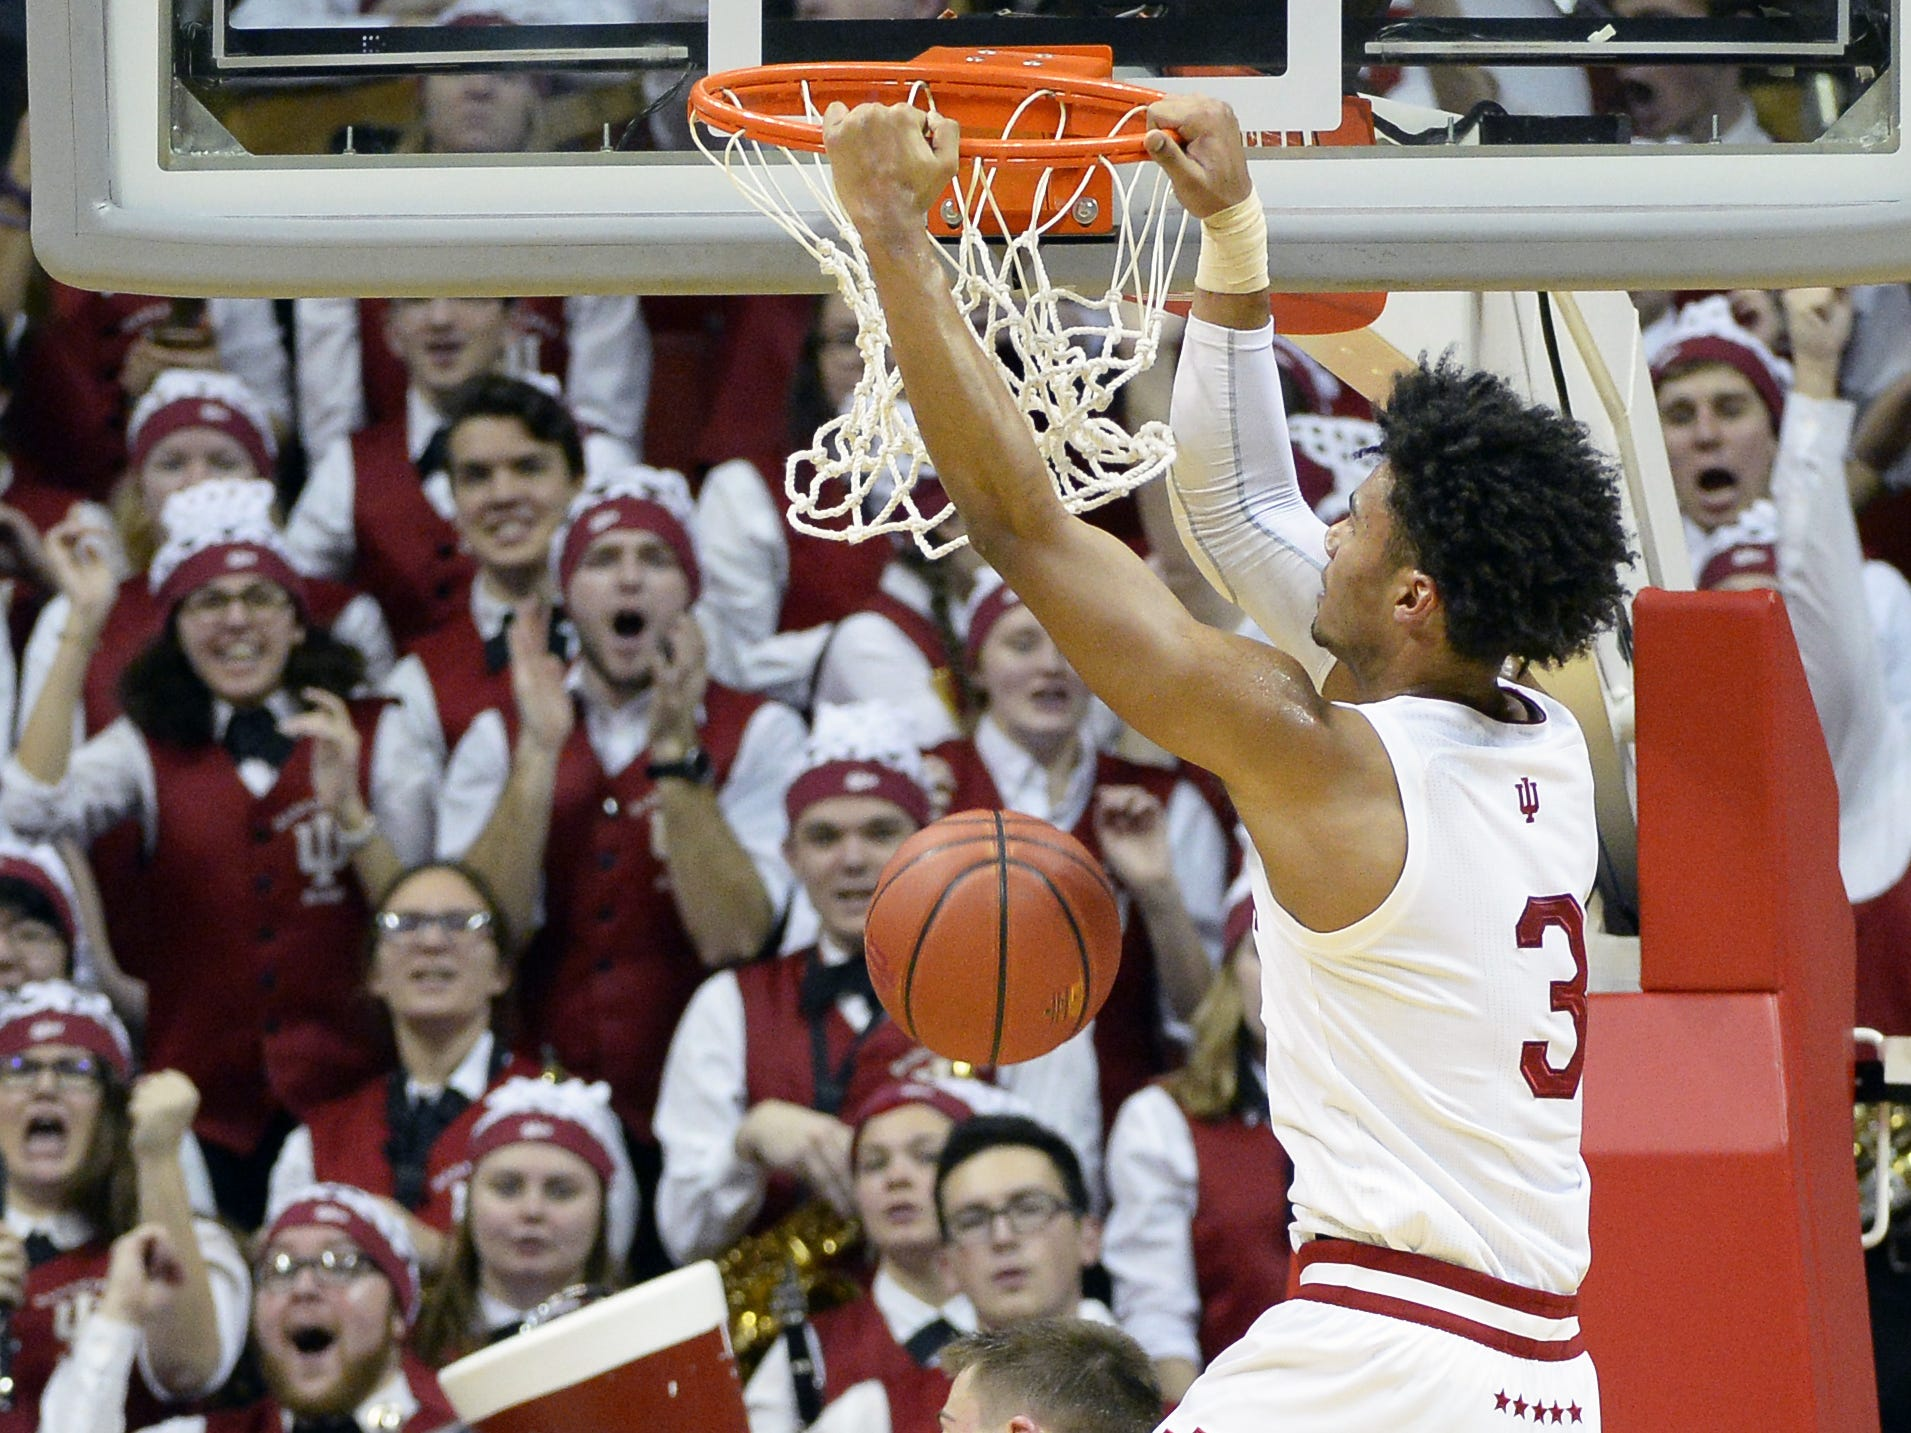 Indiana Hoosiers forward Justin Smith (3) dunks the ball during the game against Iowa at Simon Skjodt Assembly Hall in Bloomington Ind., on Thursday, Feb. 7, 2019.